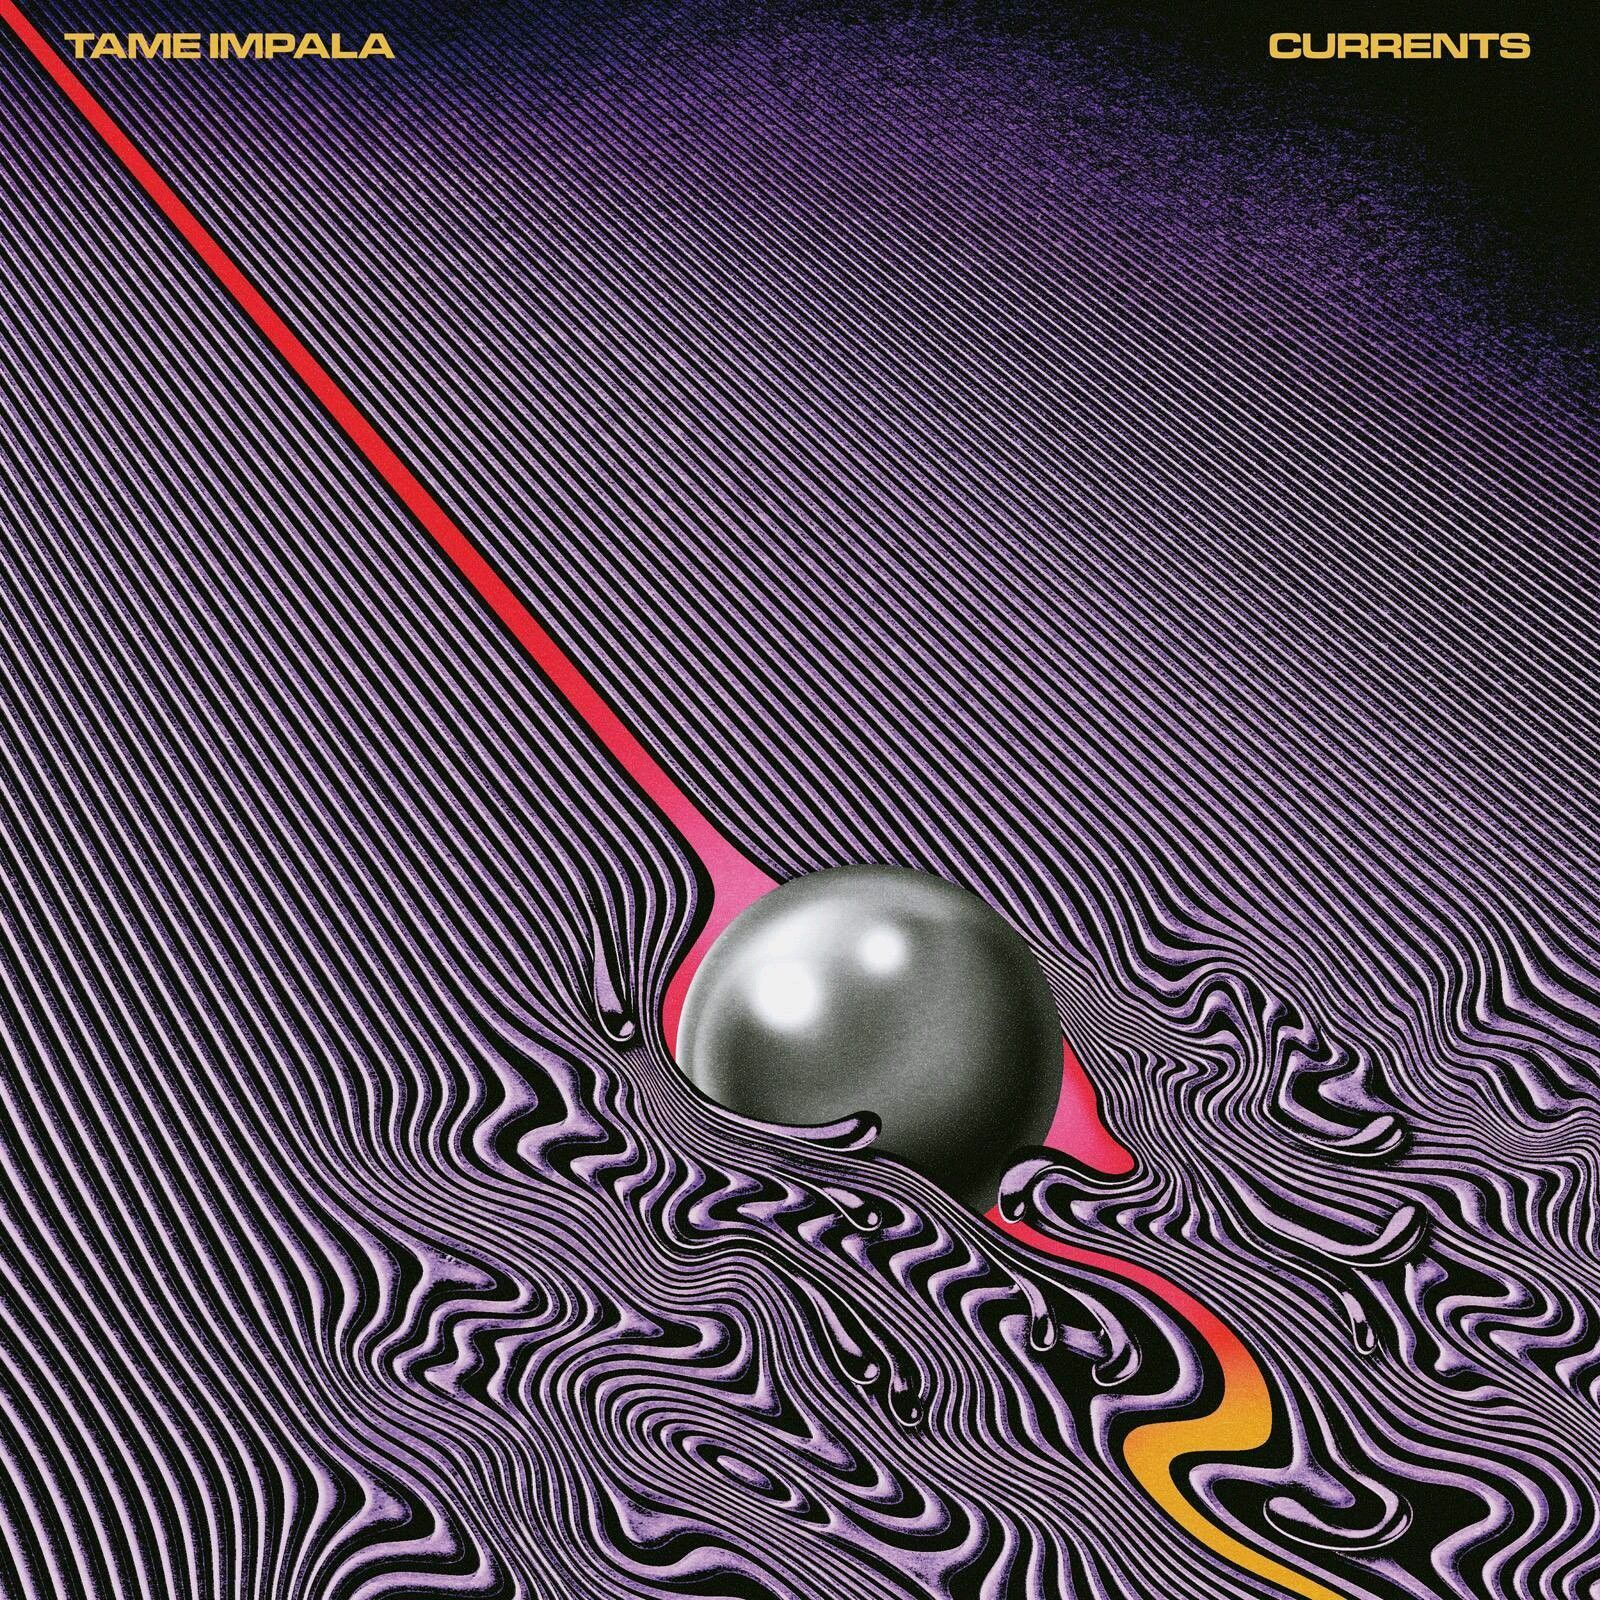 Tame Impala Psychedelic Rock Currents Album Art Cover Poster 20×20 24×24 32×32